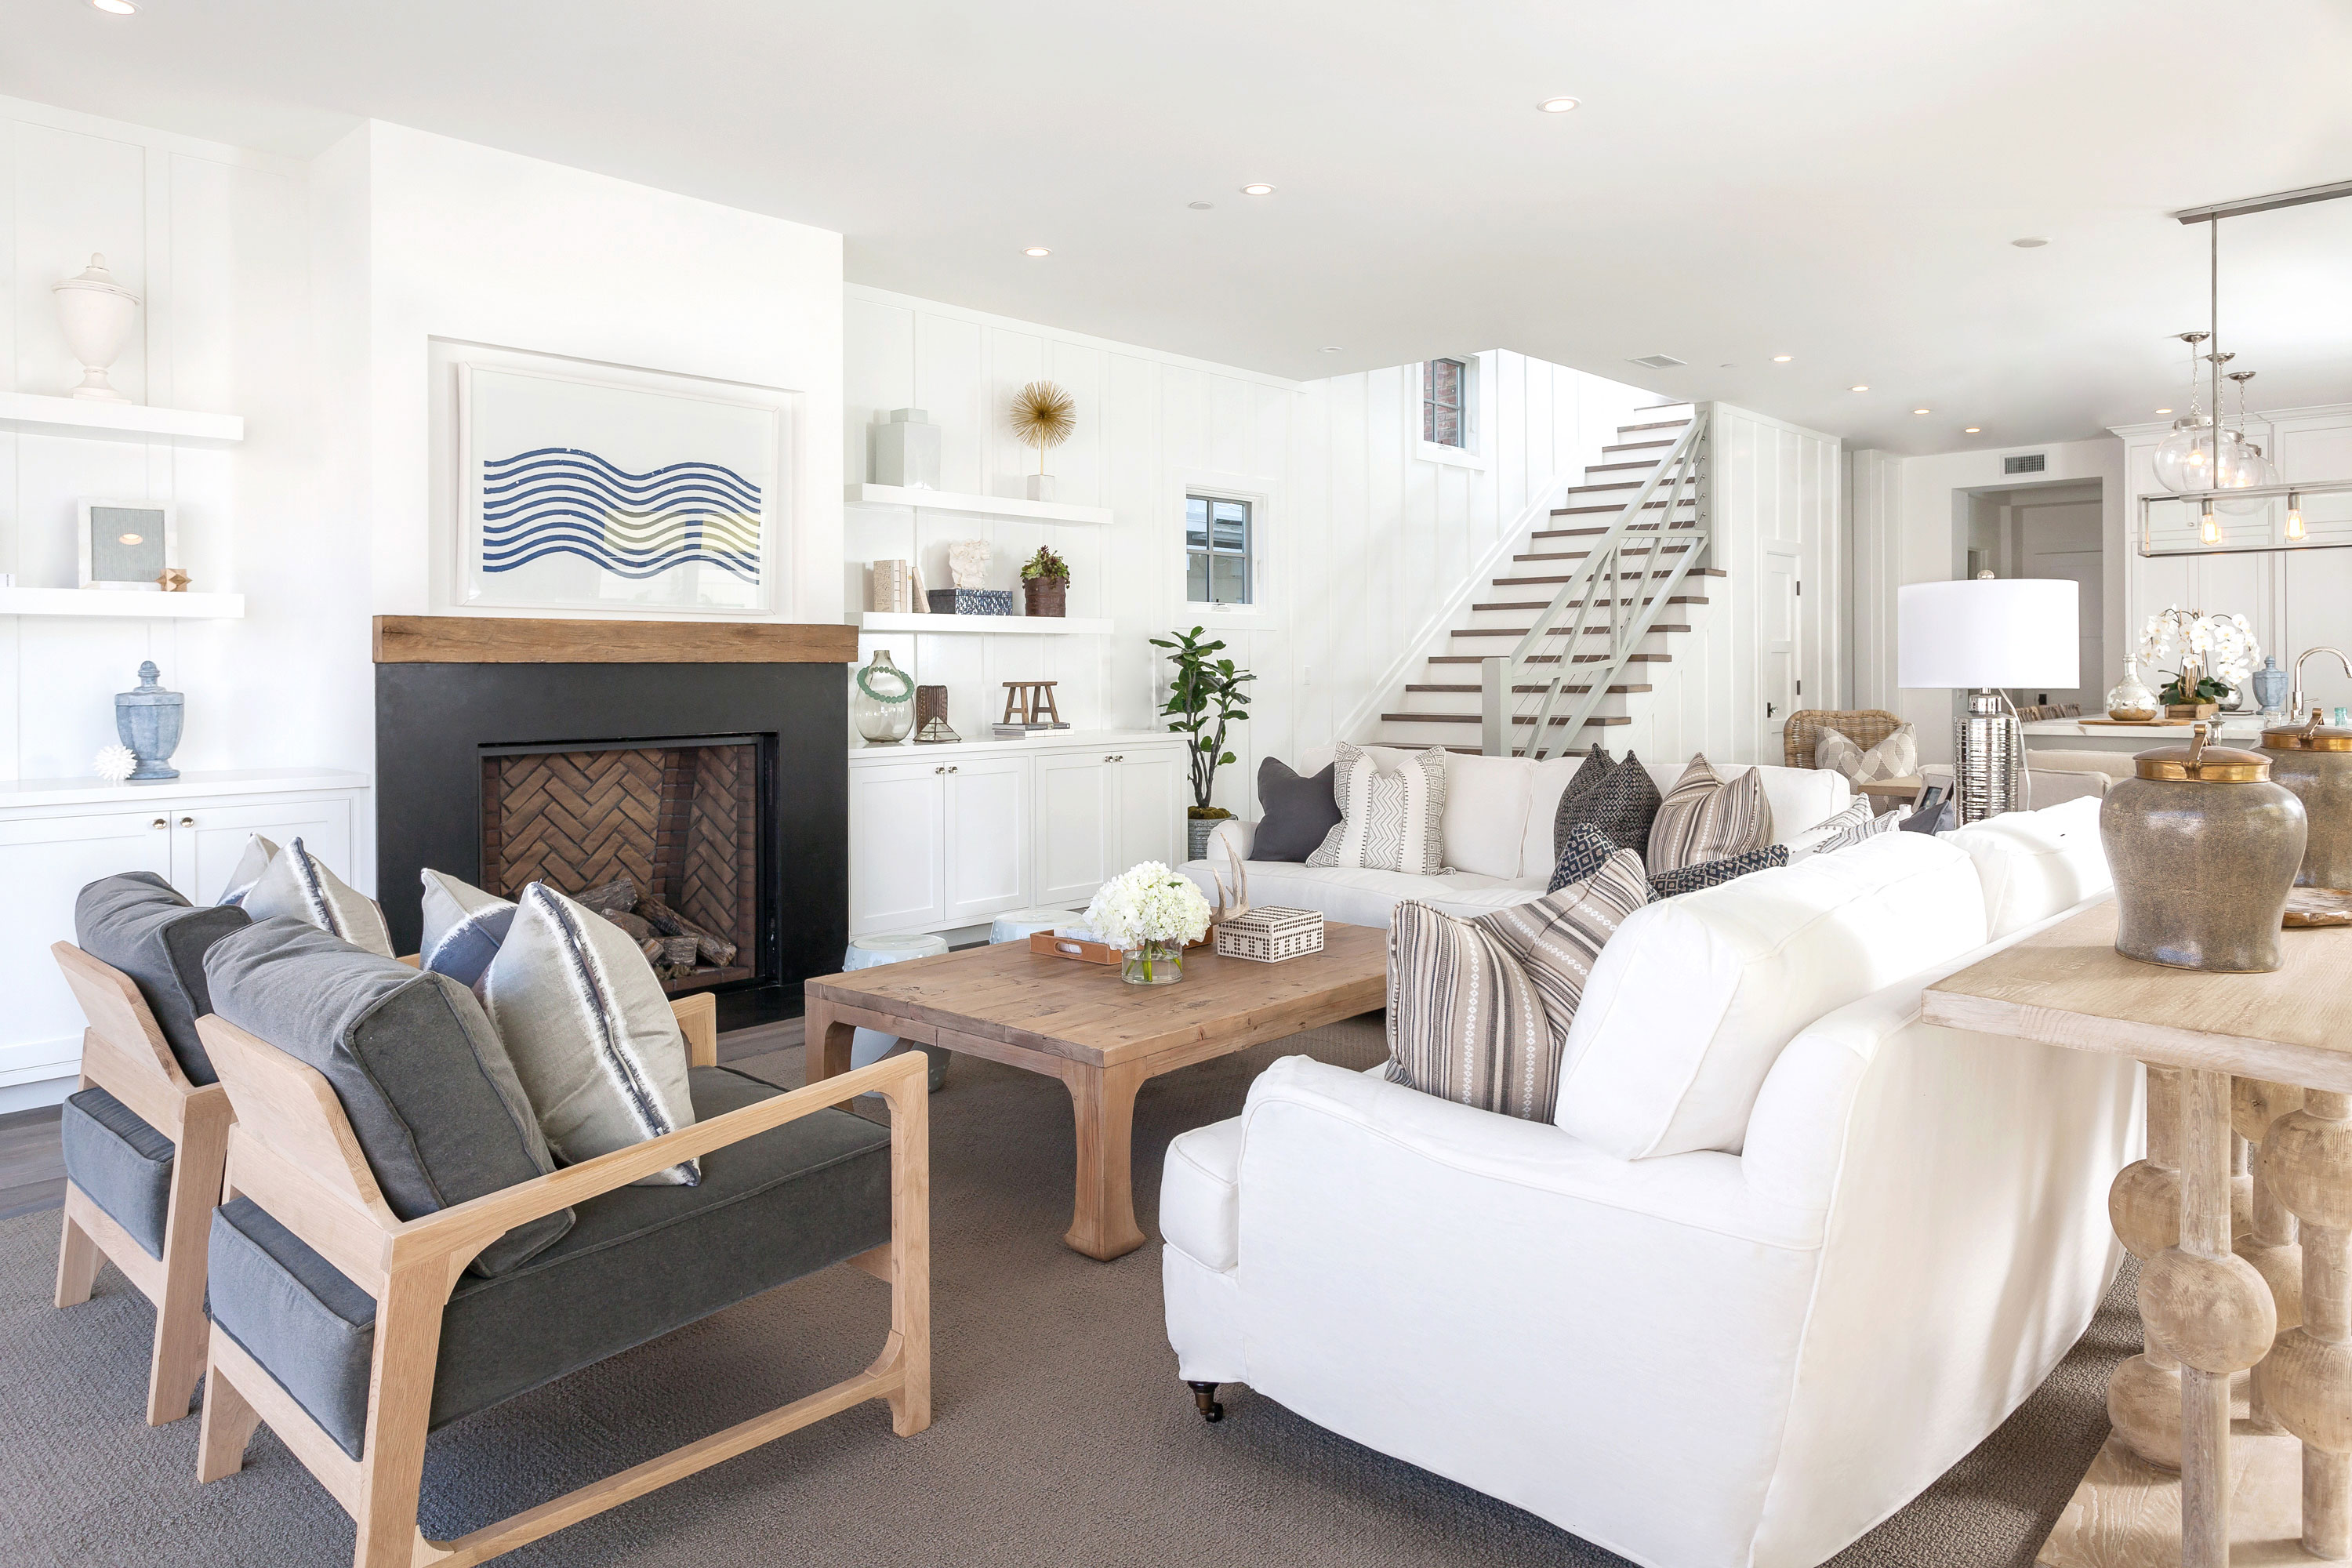 Houzz Feature on Project West Bay